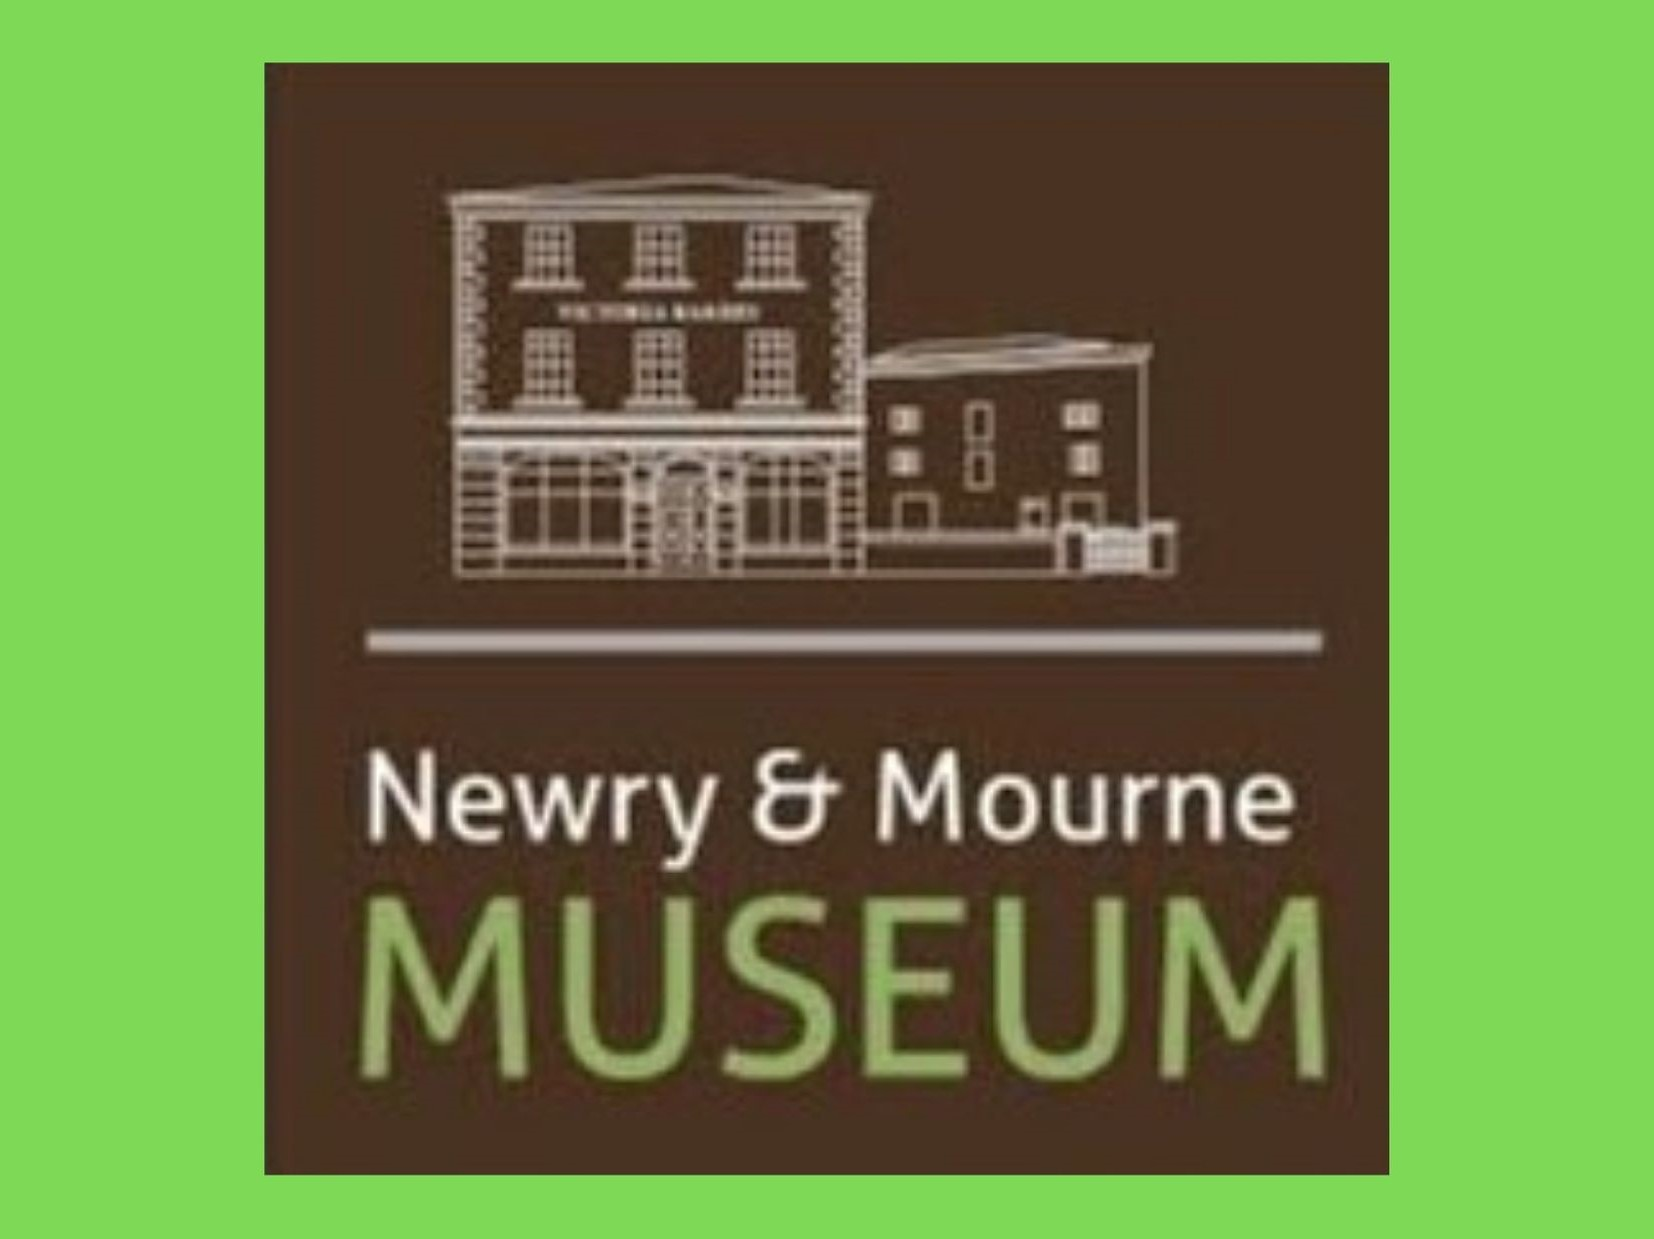 Newry & Mourne Museum